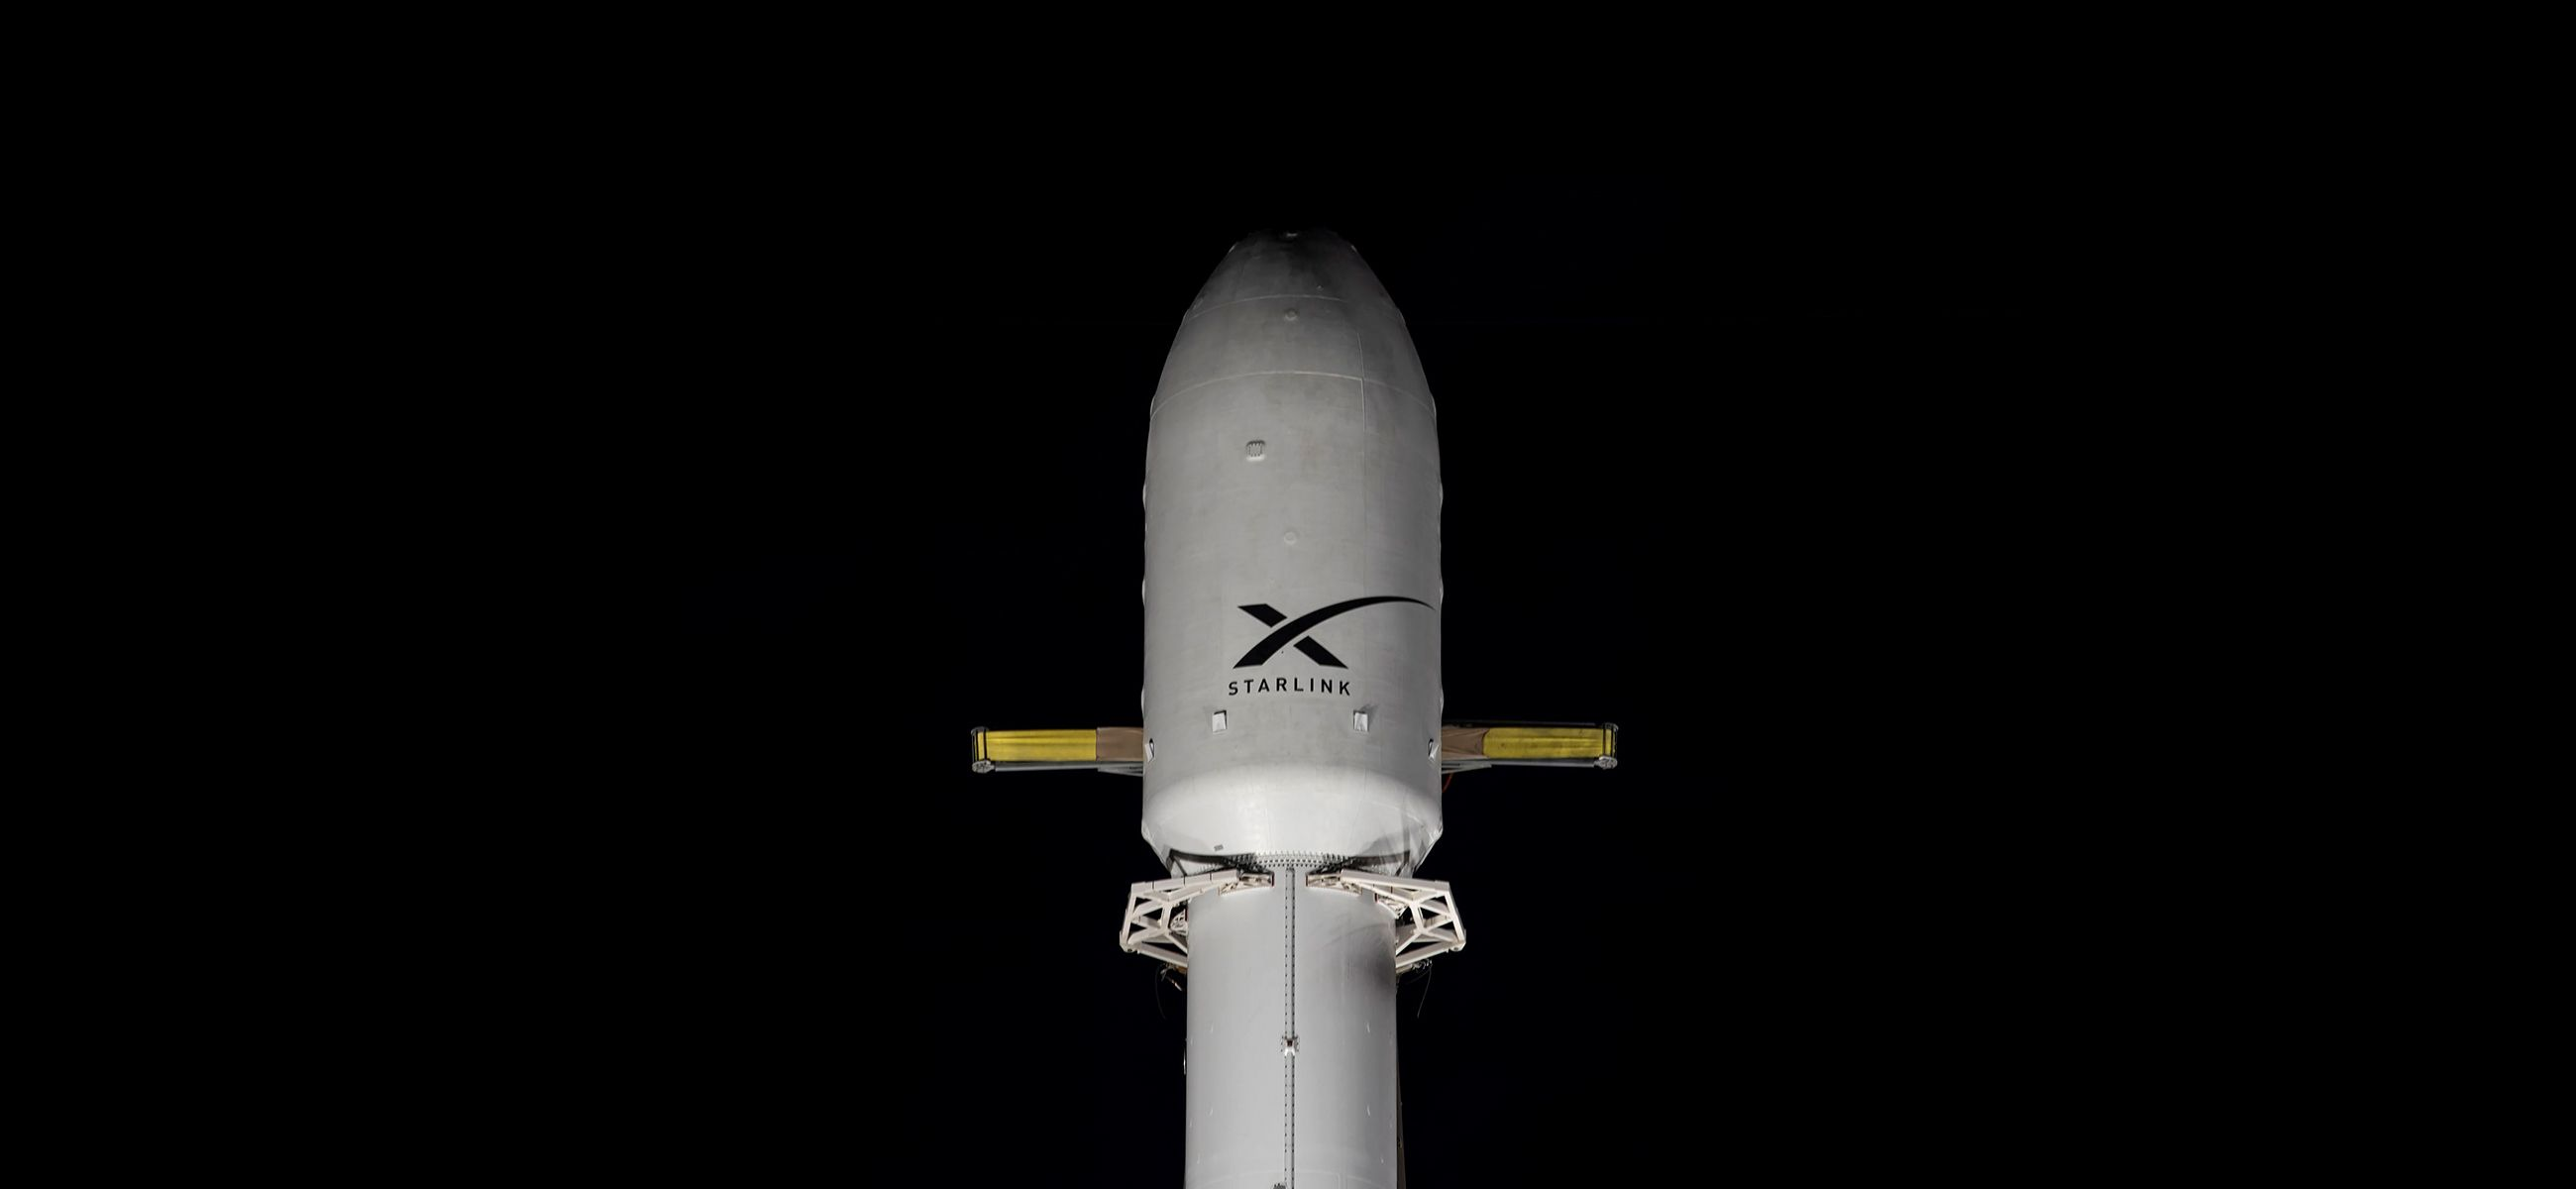 Watch SpaceX launch its latest batch of Starlink satellites, including one with a sun visor